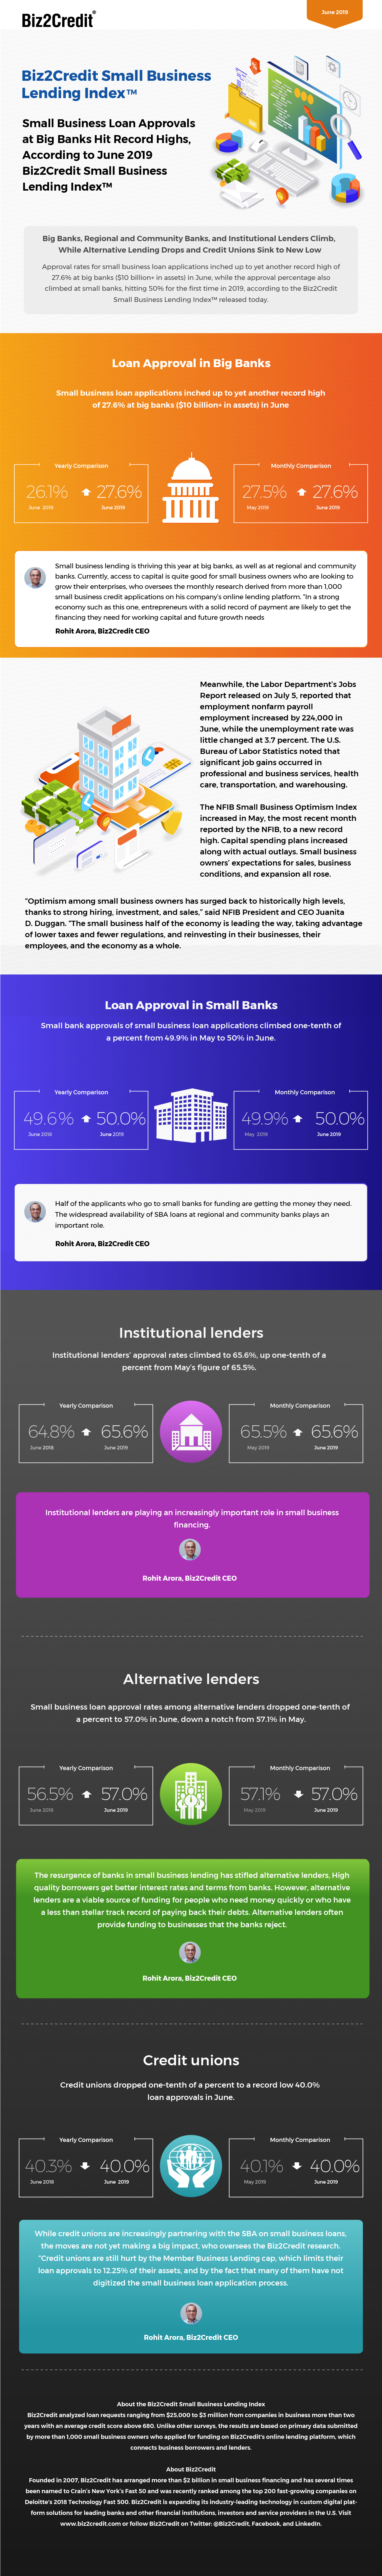 June 2019 Lending Index Infographic